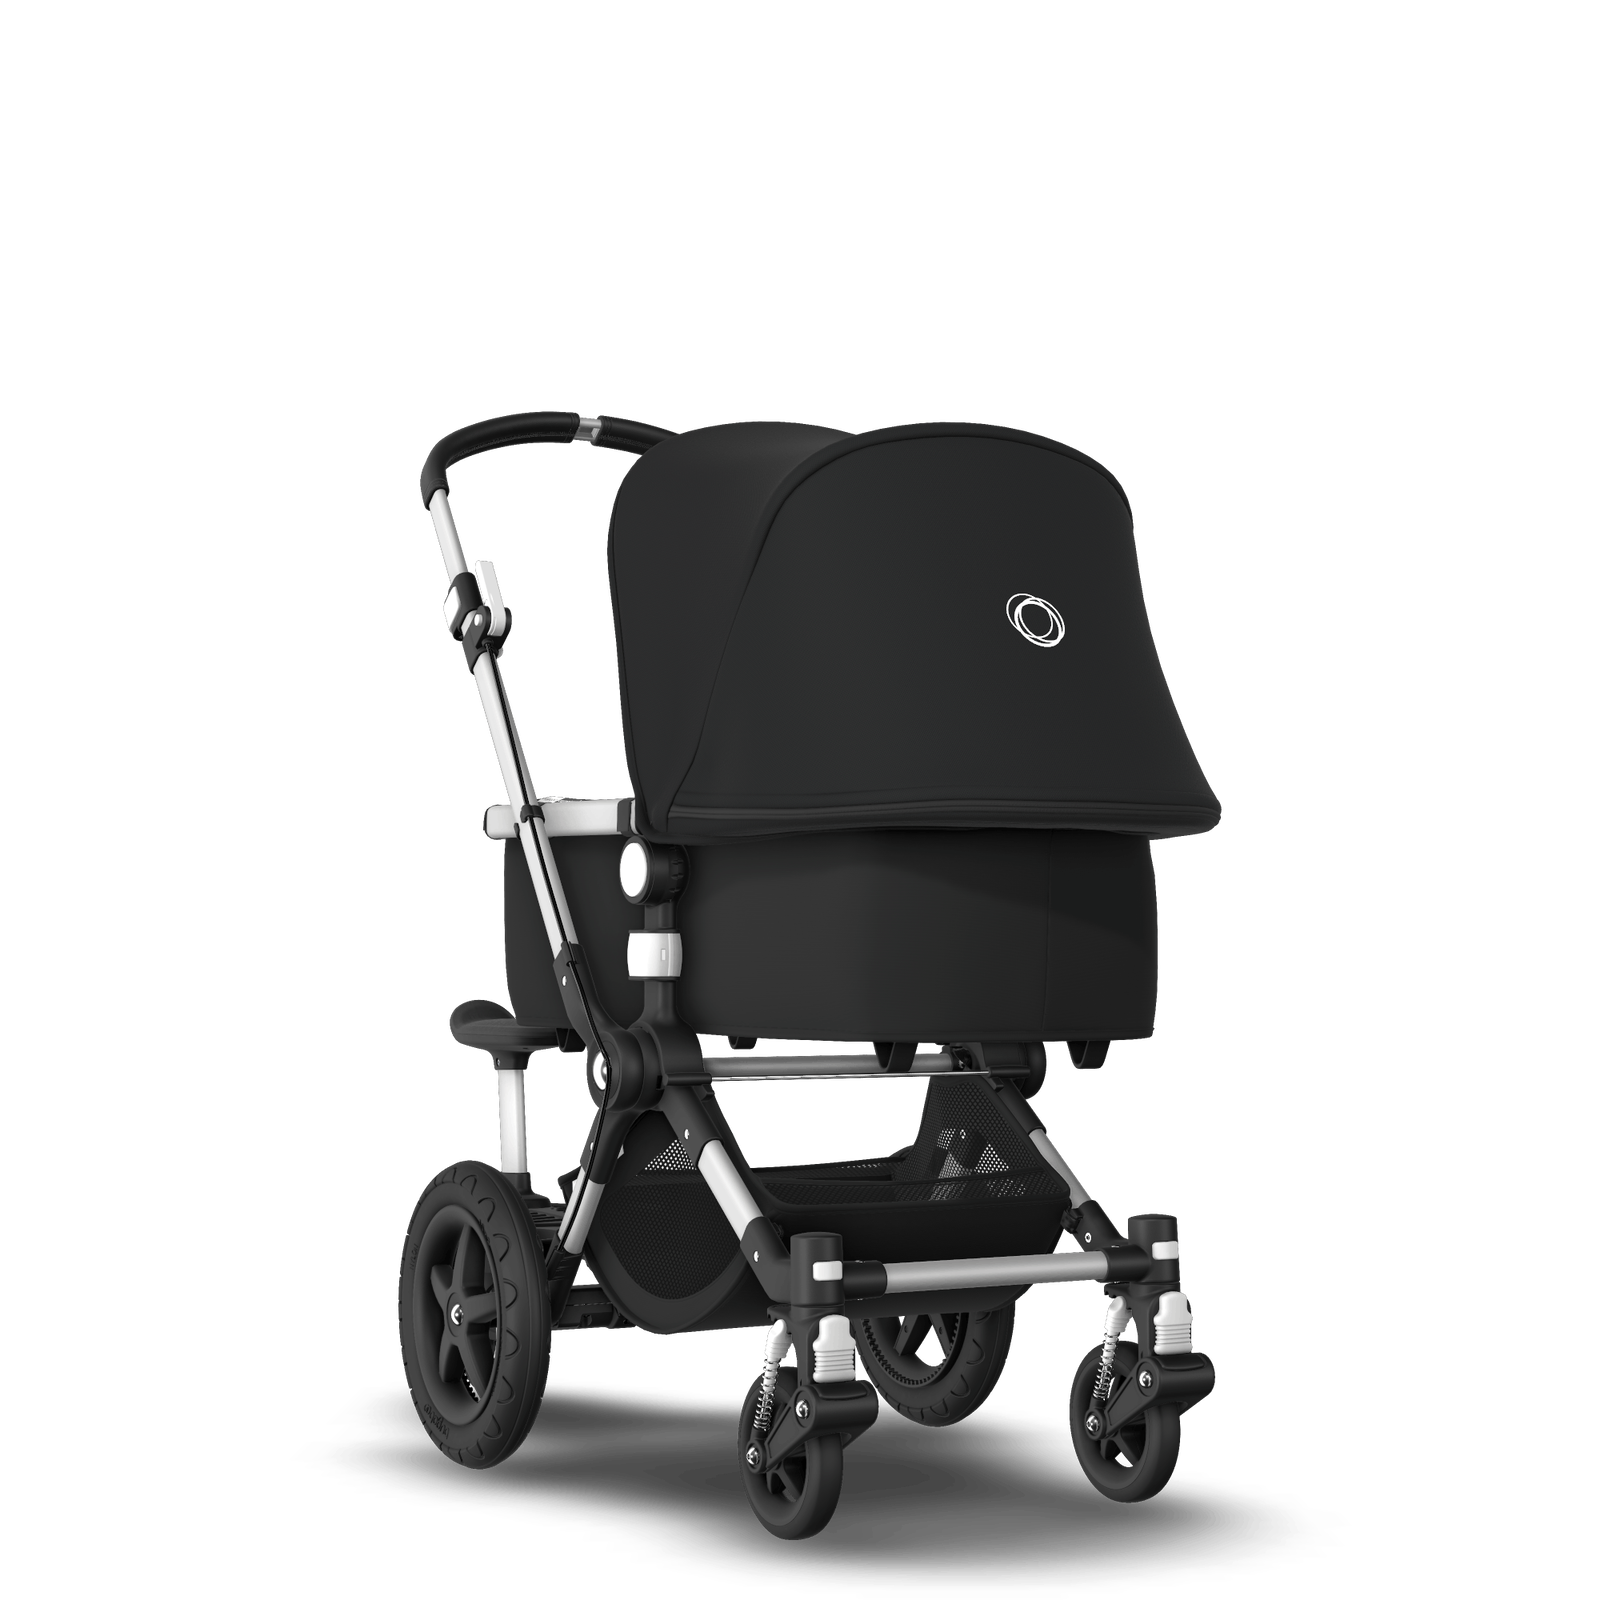 Bugaboo Cameleon 3 Plus sit and stand stroller